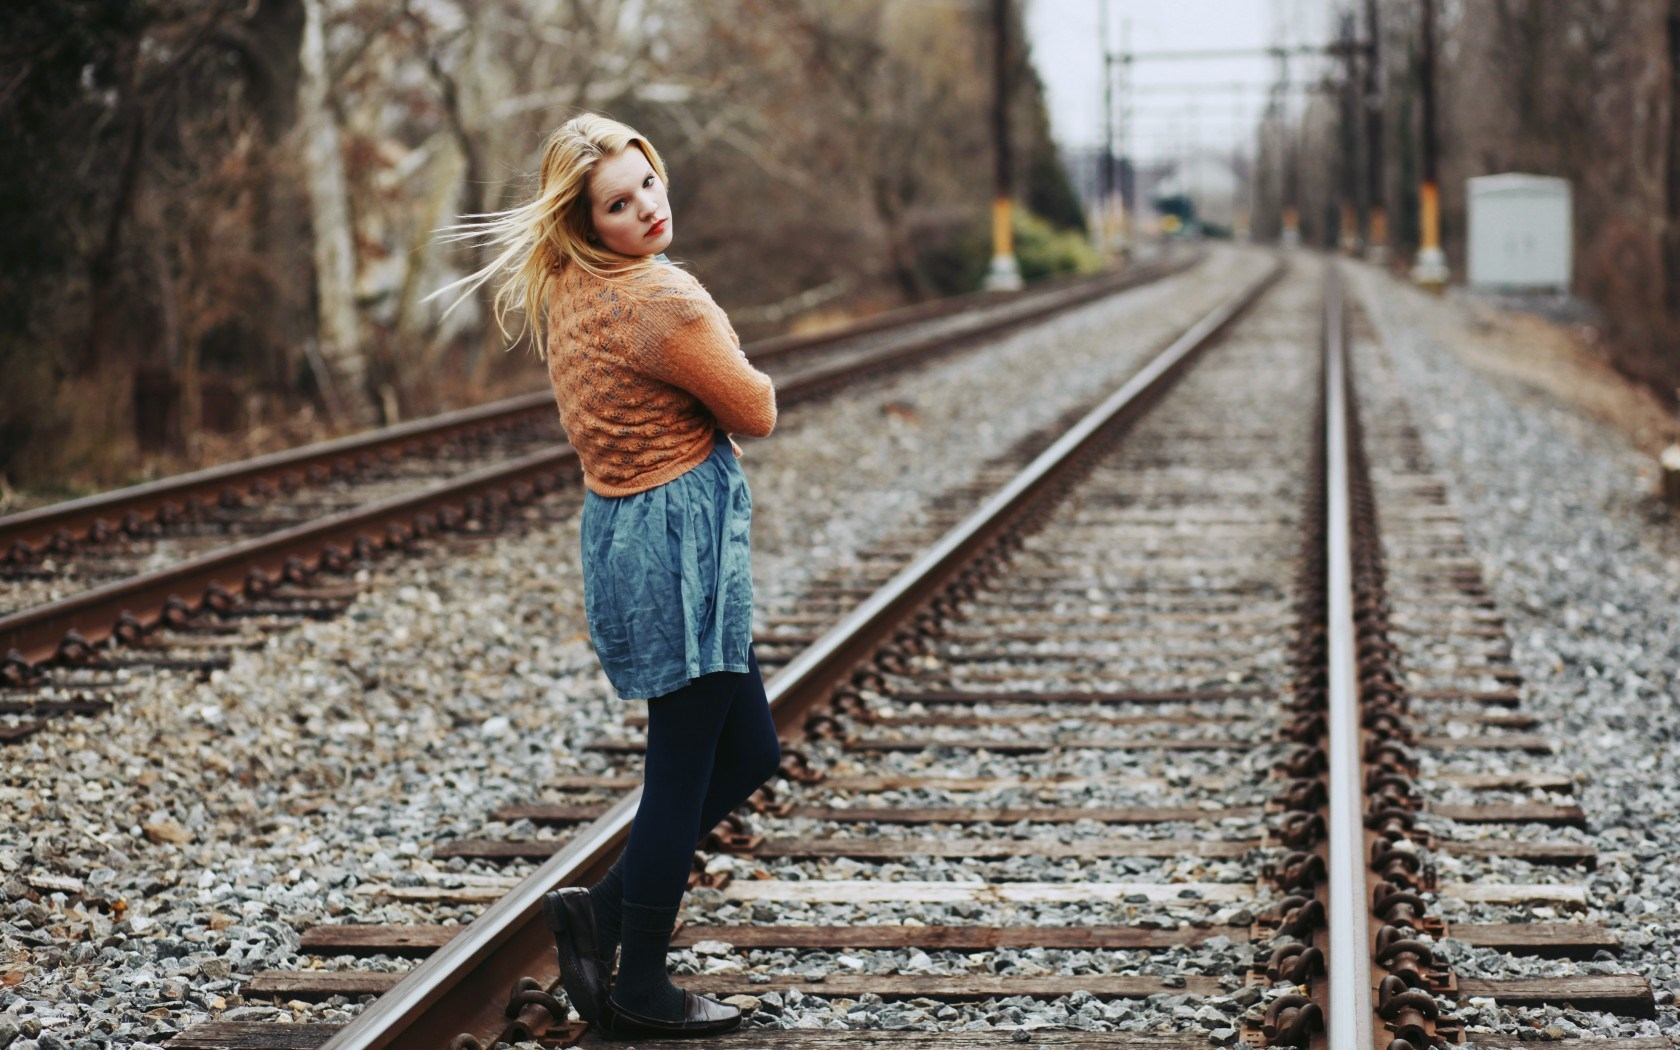 Mood Girl Blonde Railroad Photo